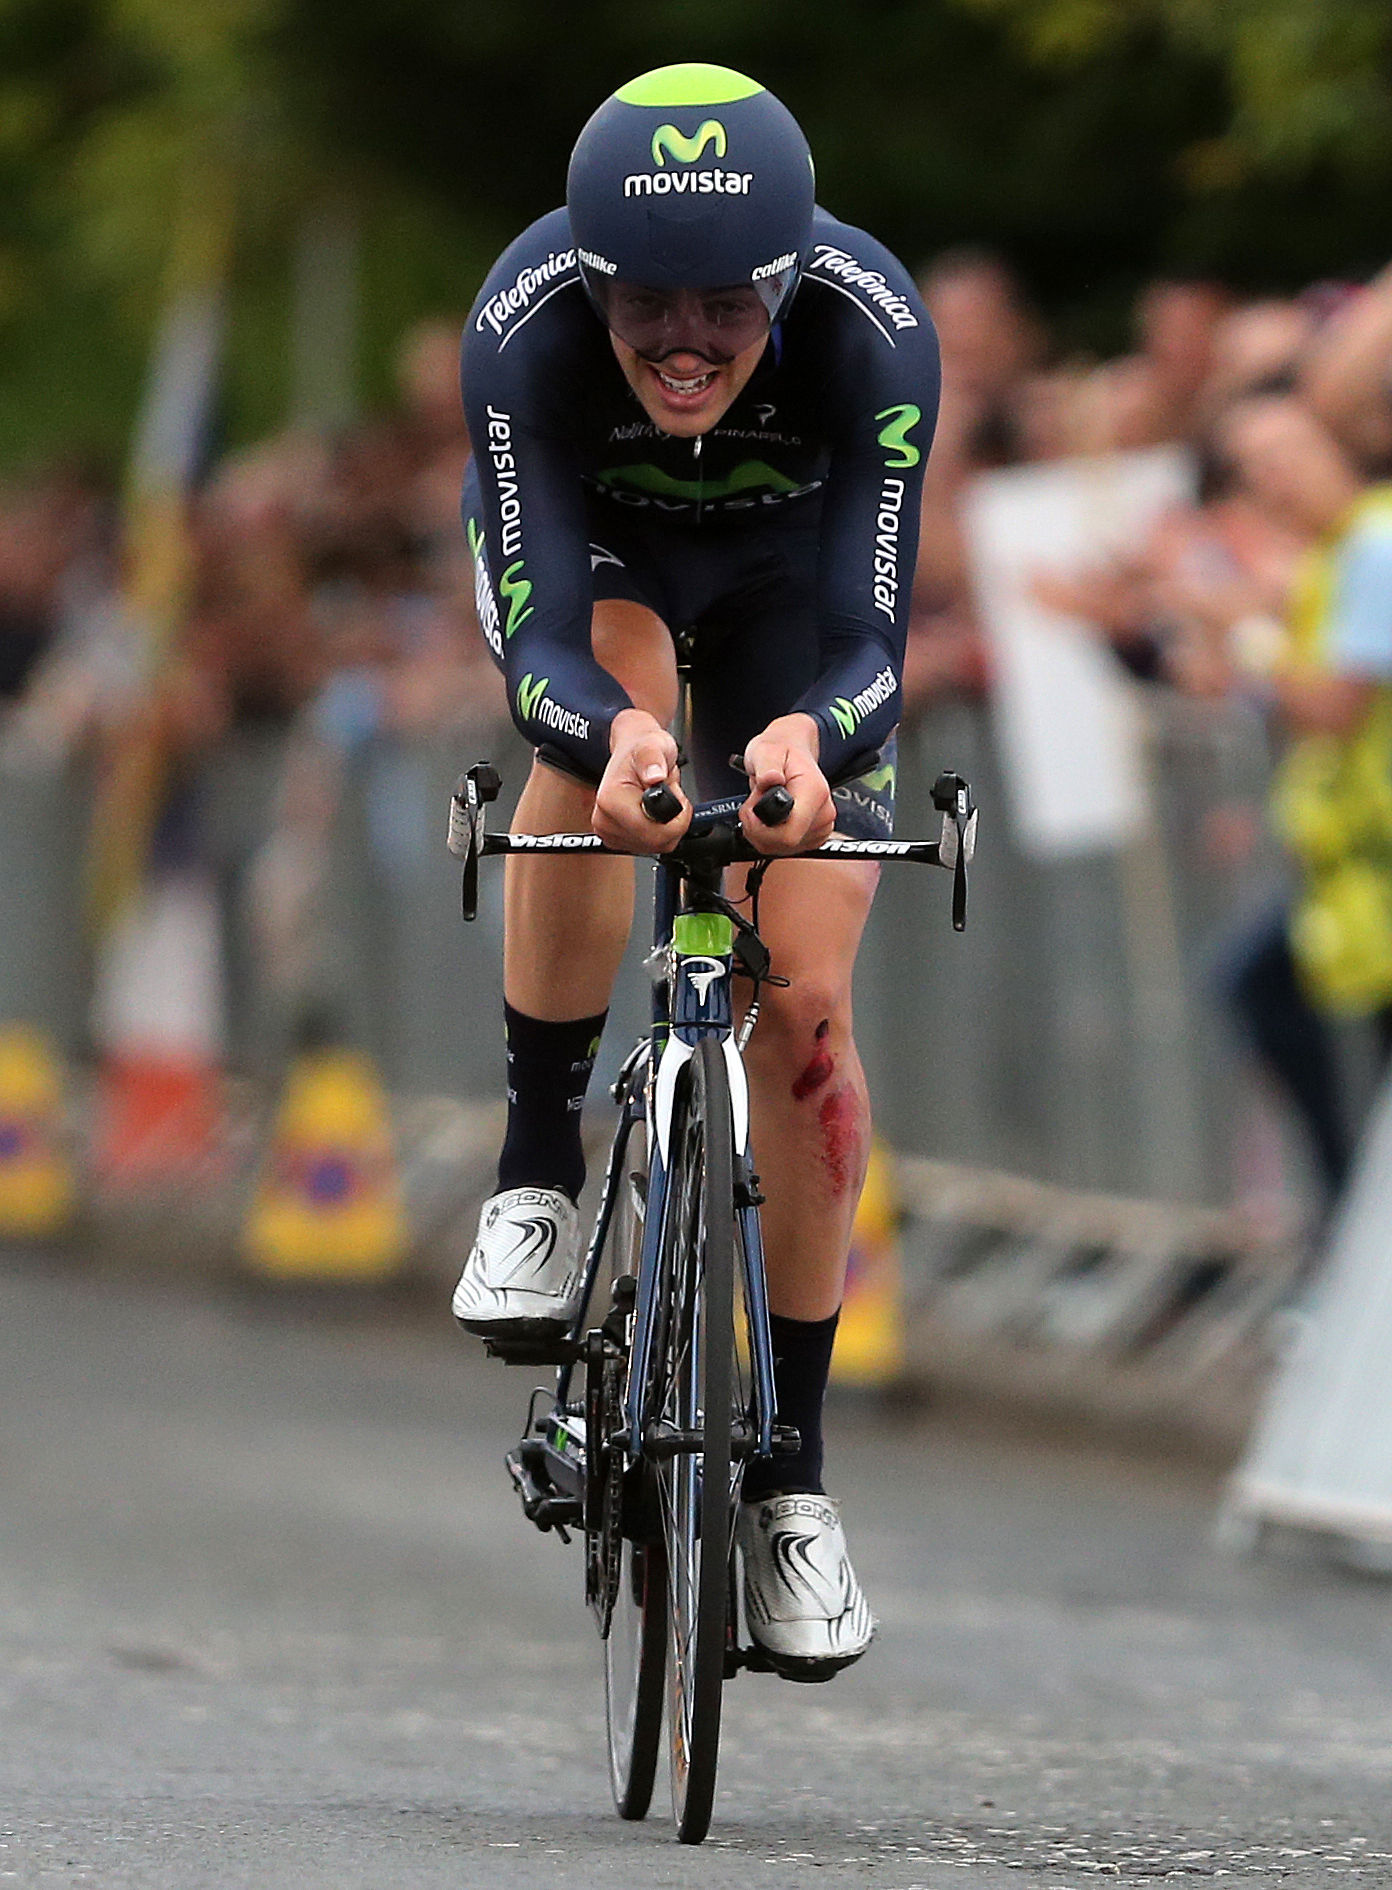 Alex Dowsett competing in the National Road Race Championships